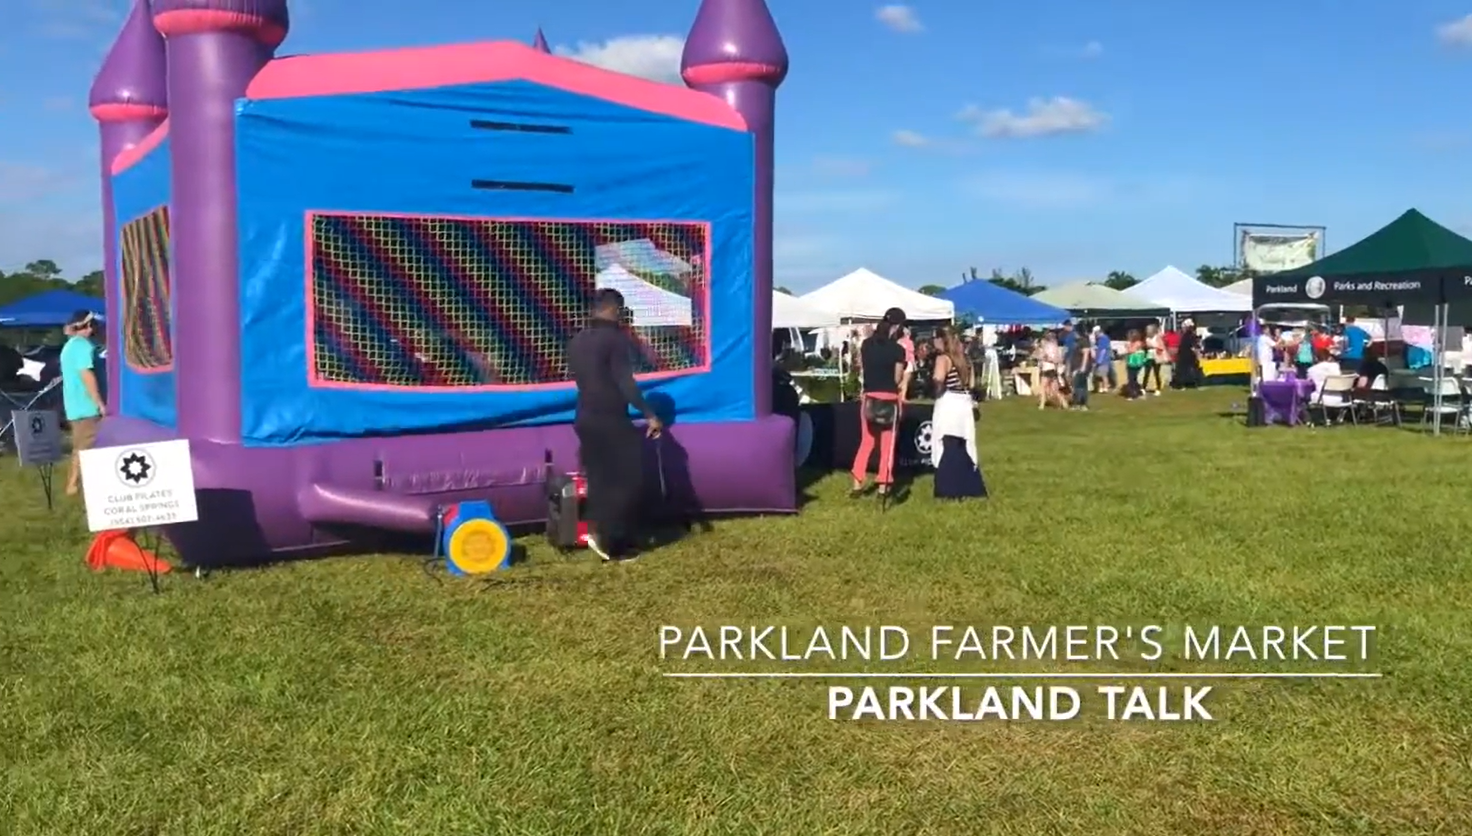 Bounce house at the Parkland Farmers' Market Business Expo